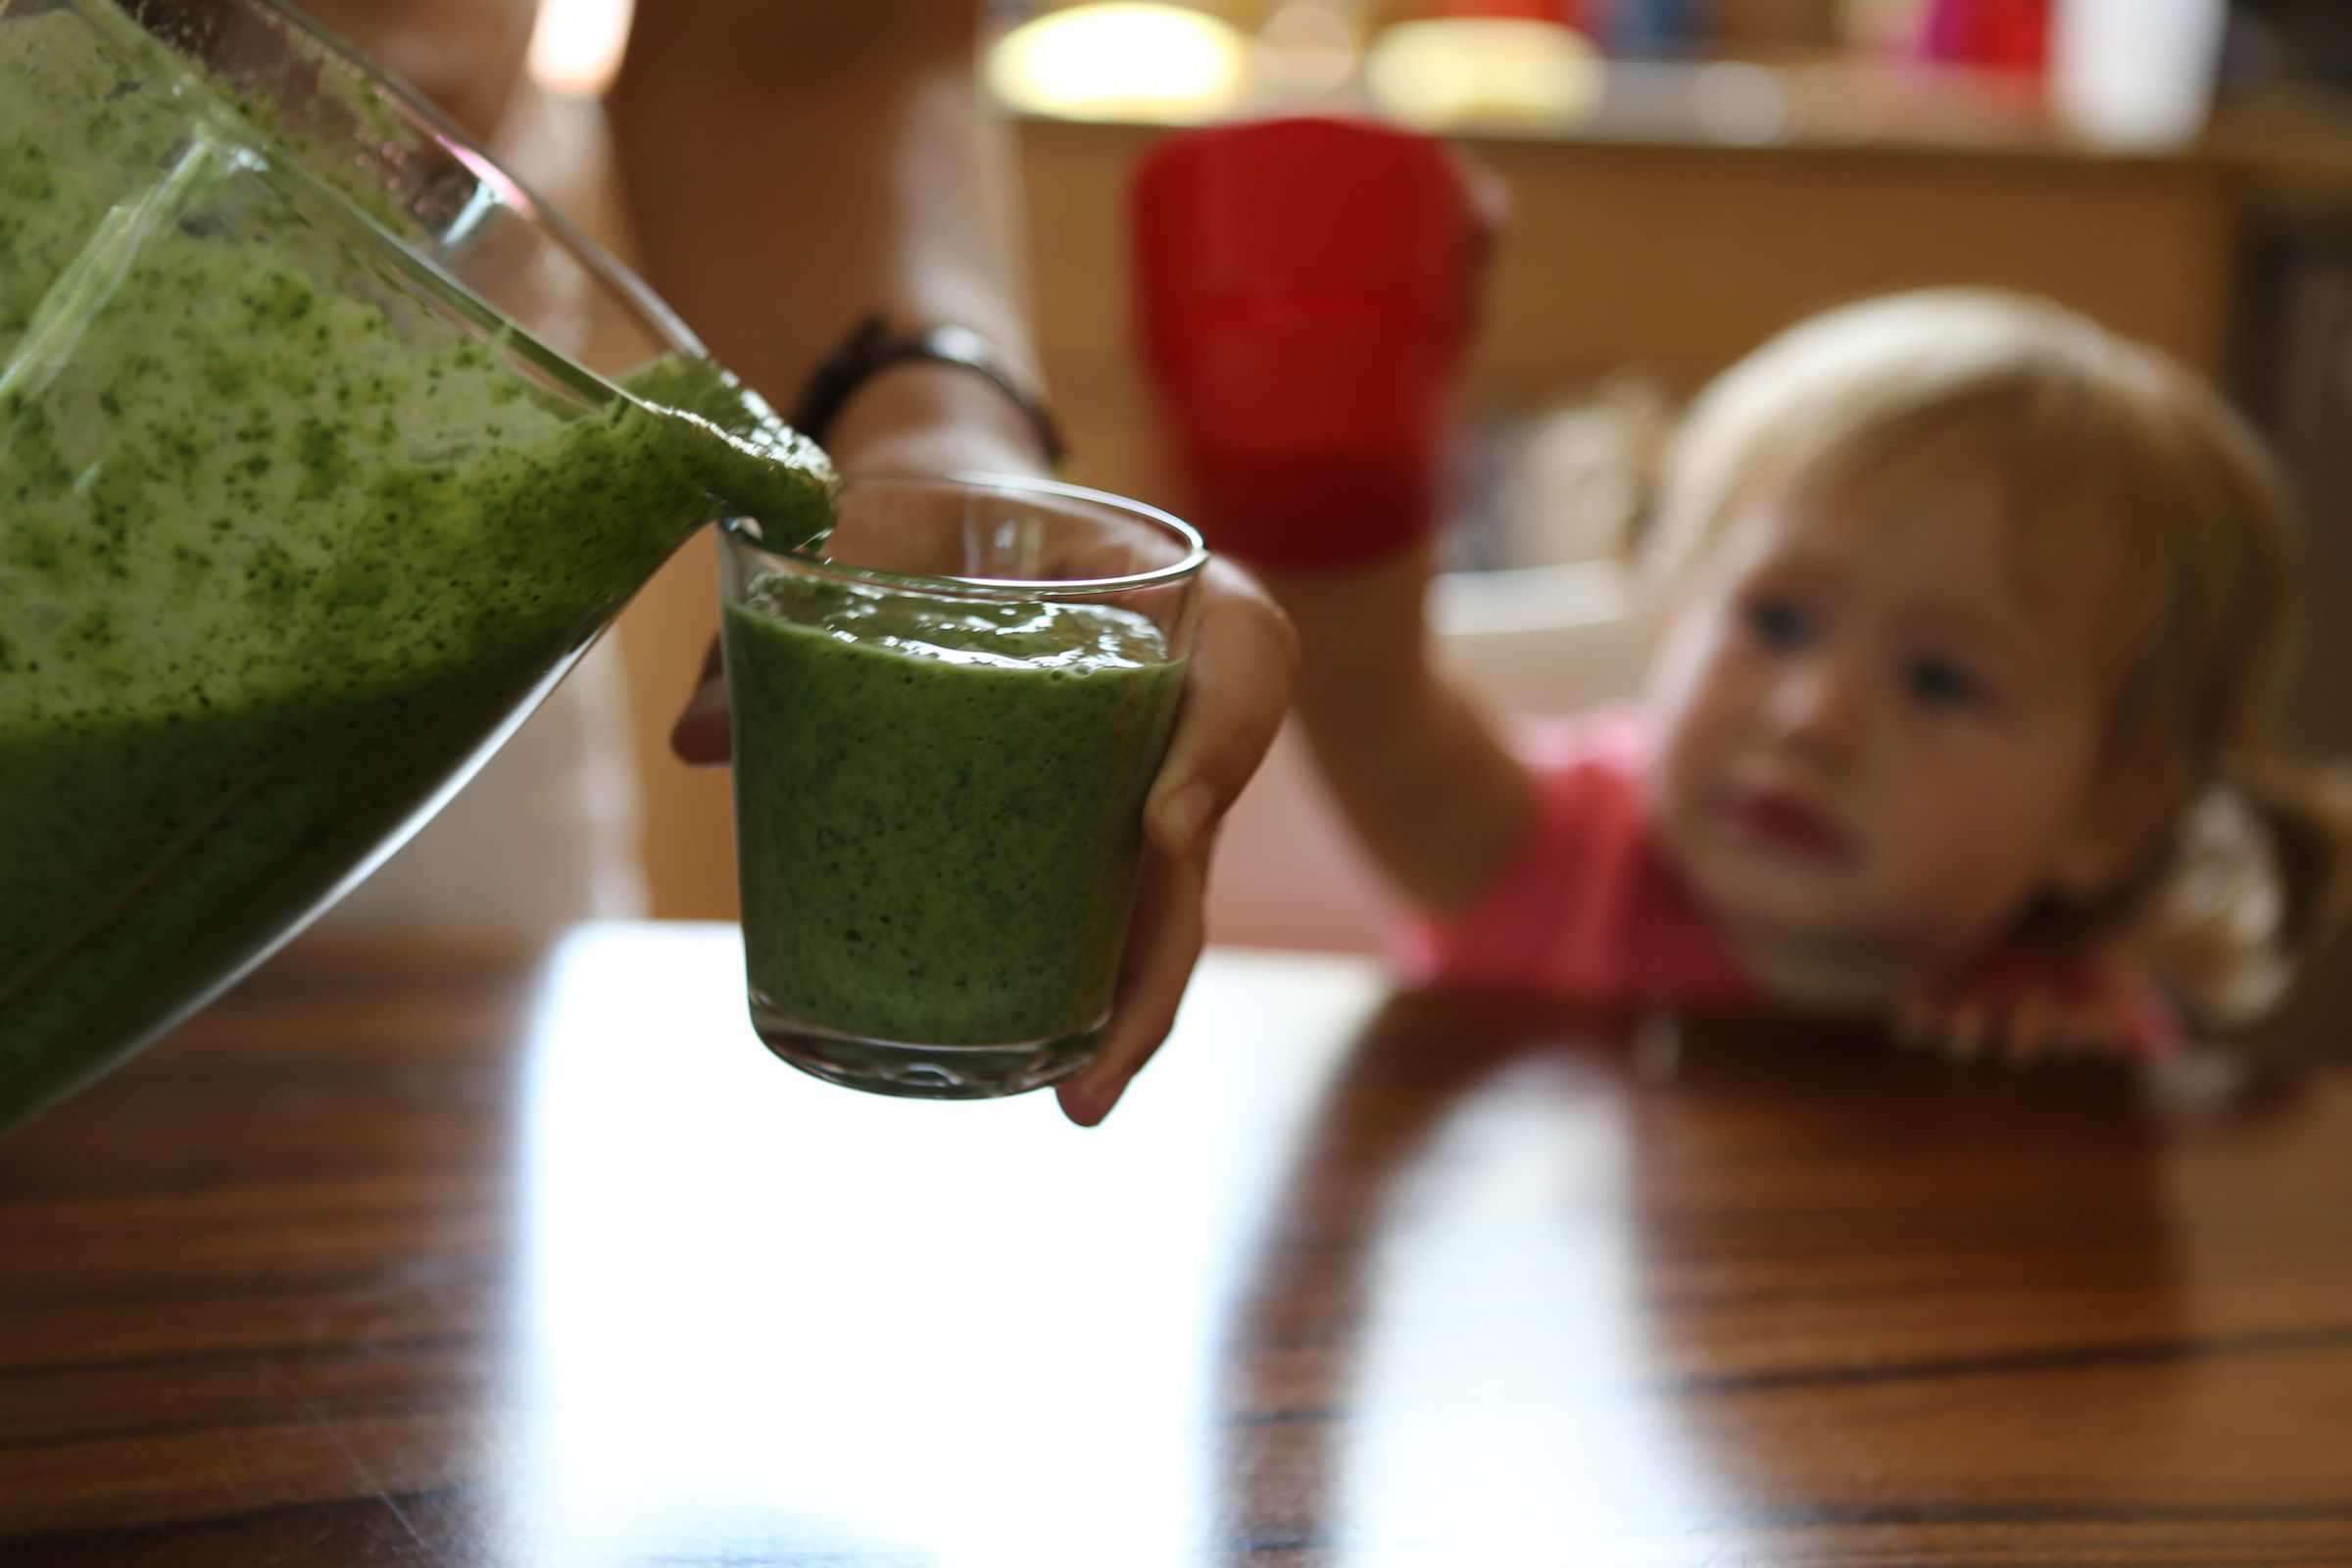 A kale-based smoothie.